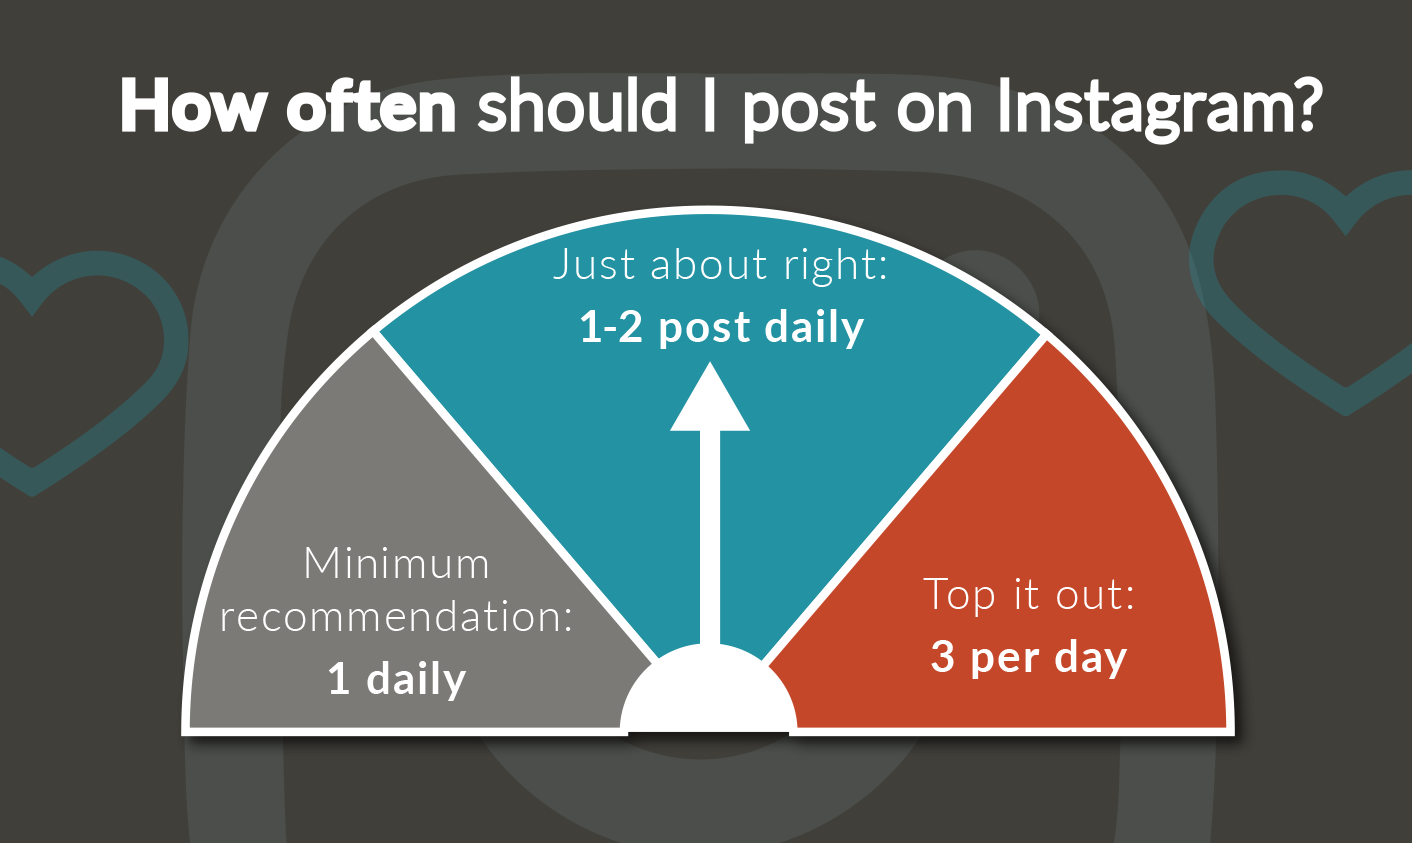 Jones-complete-social-media-guide-instagram-howoftentopost